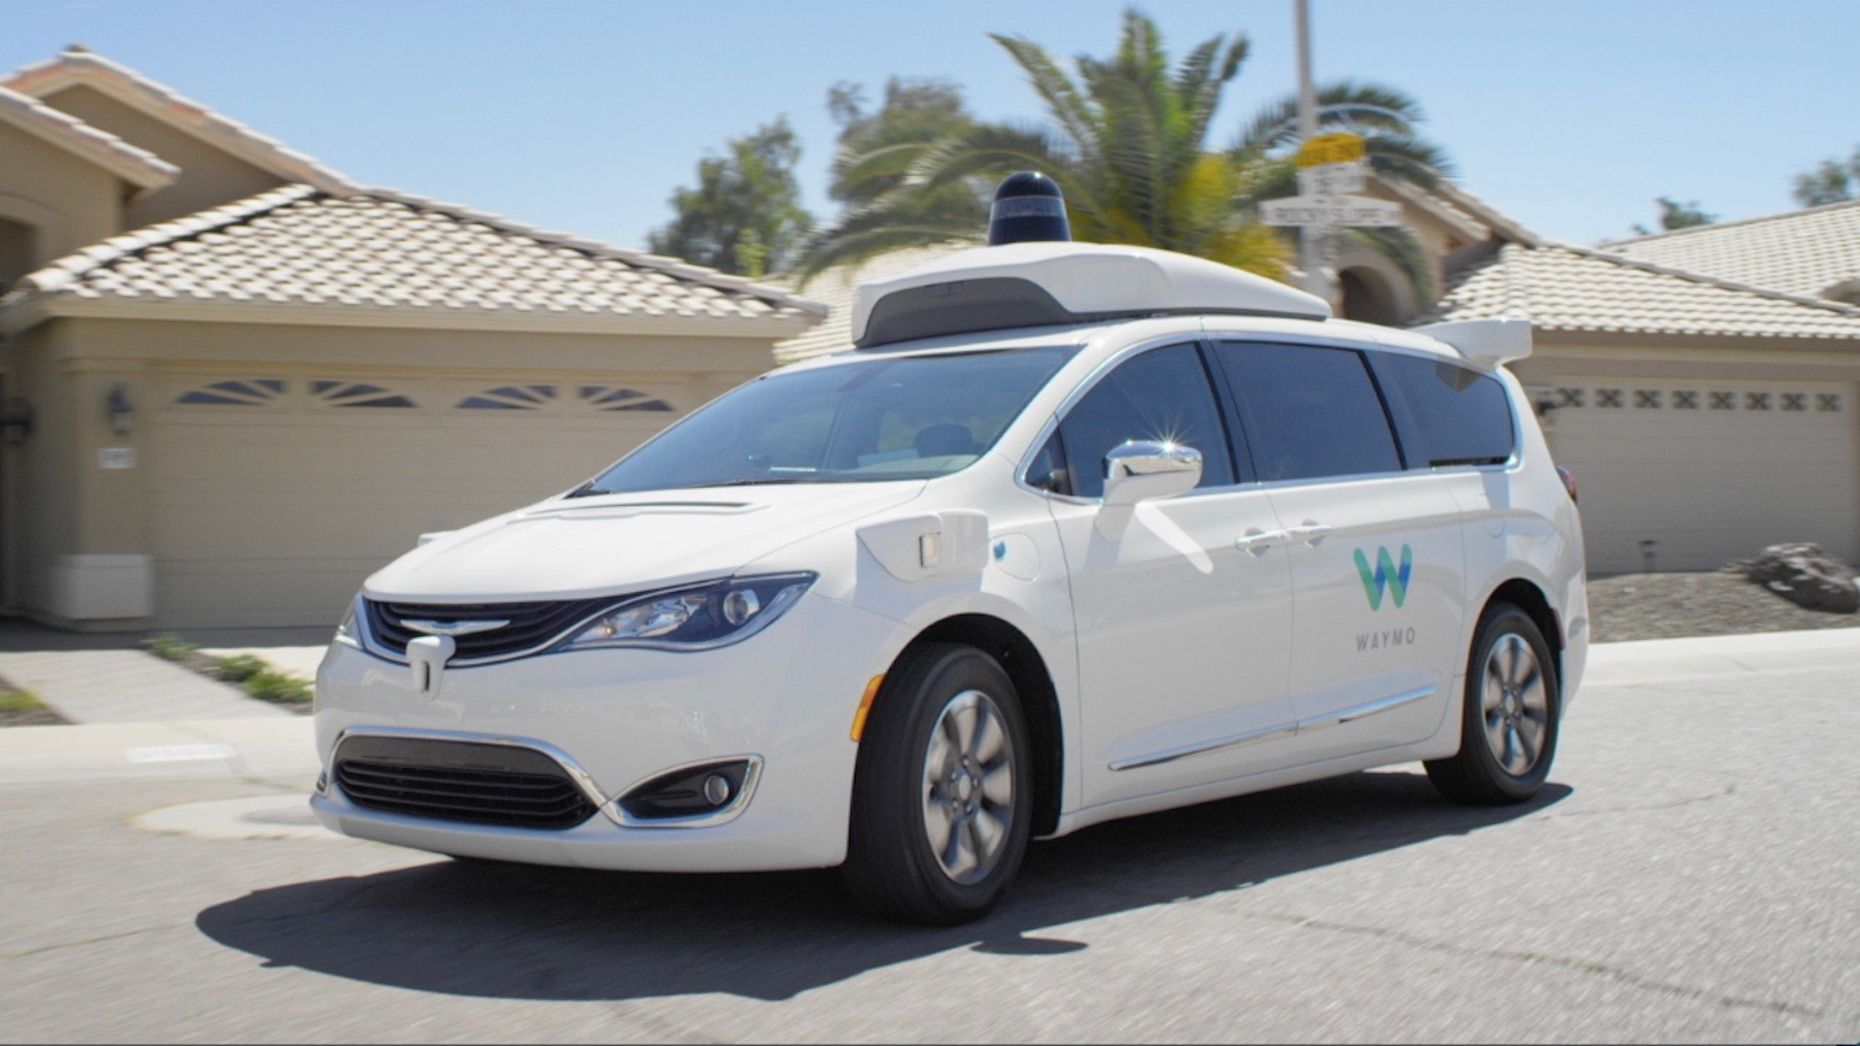 A Waymo minivan in Phoenix. Source: Waymo.